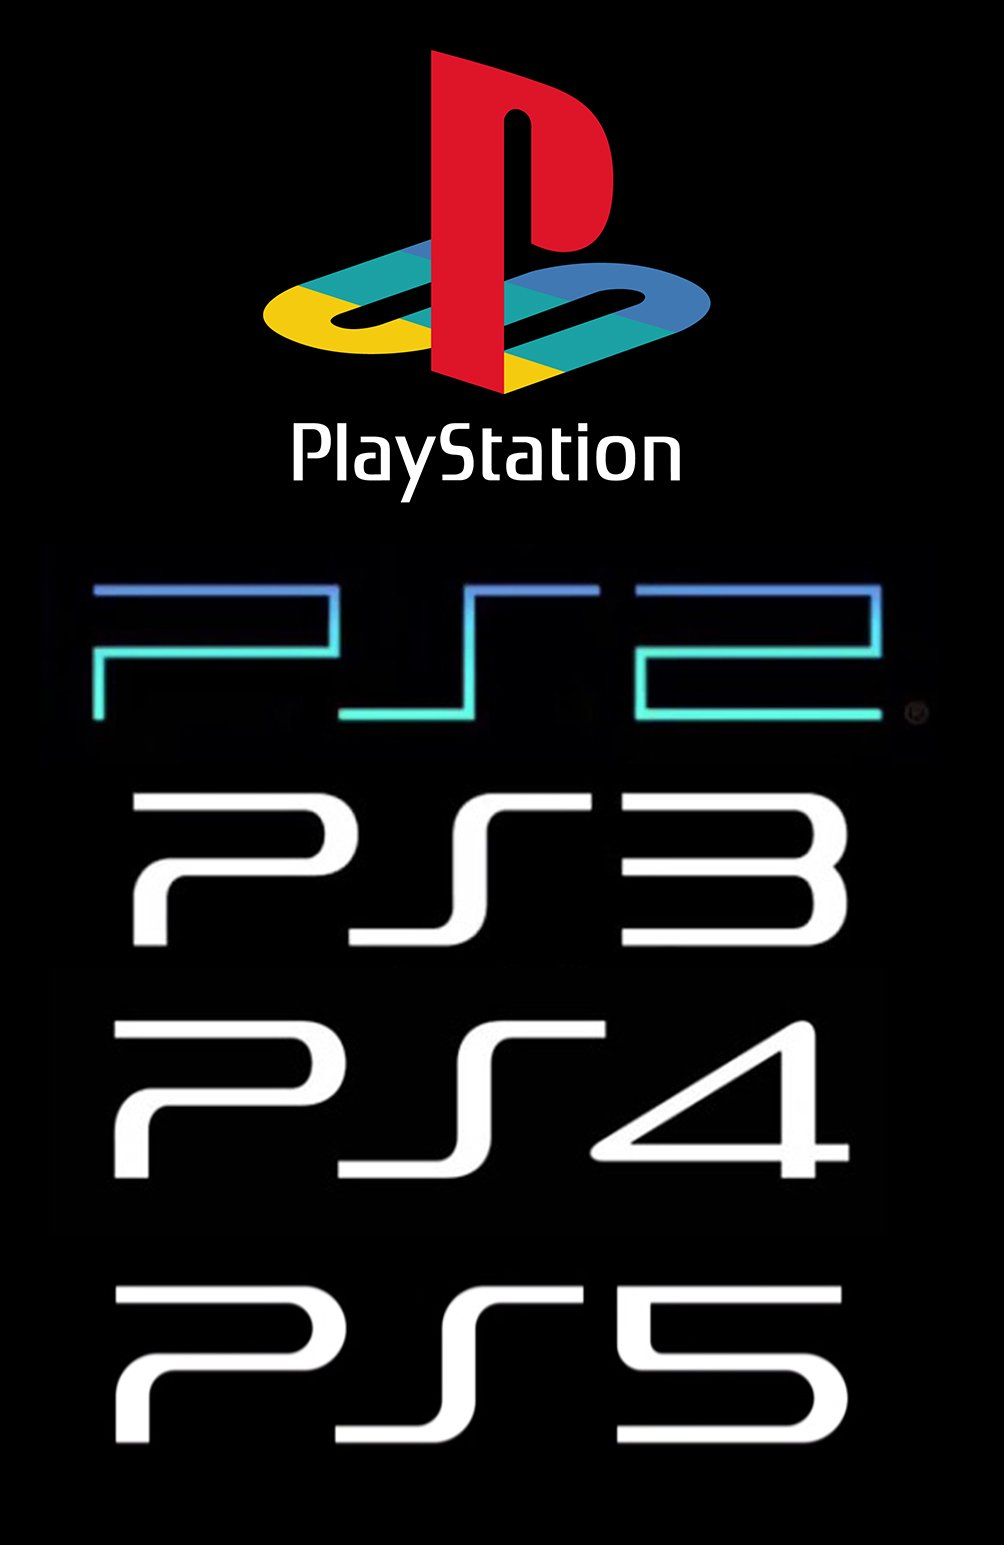 Image result for ps5 logo